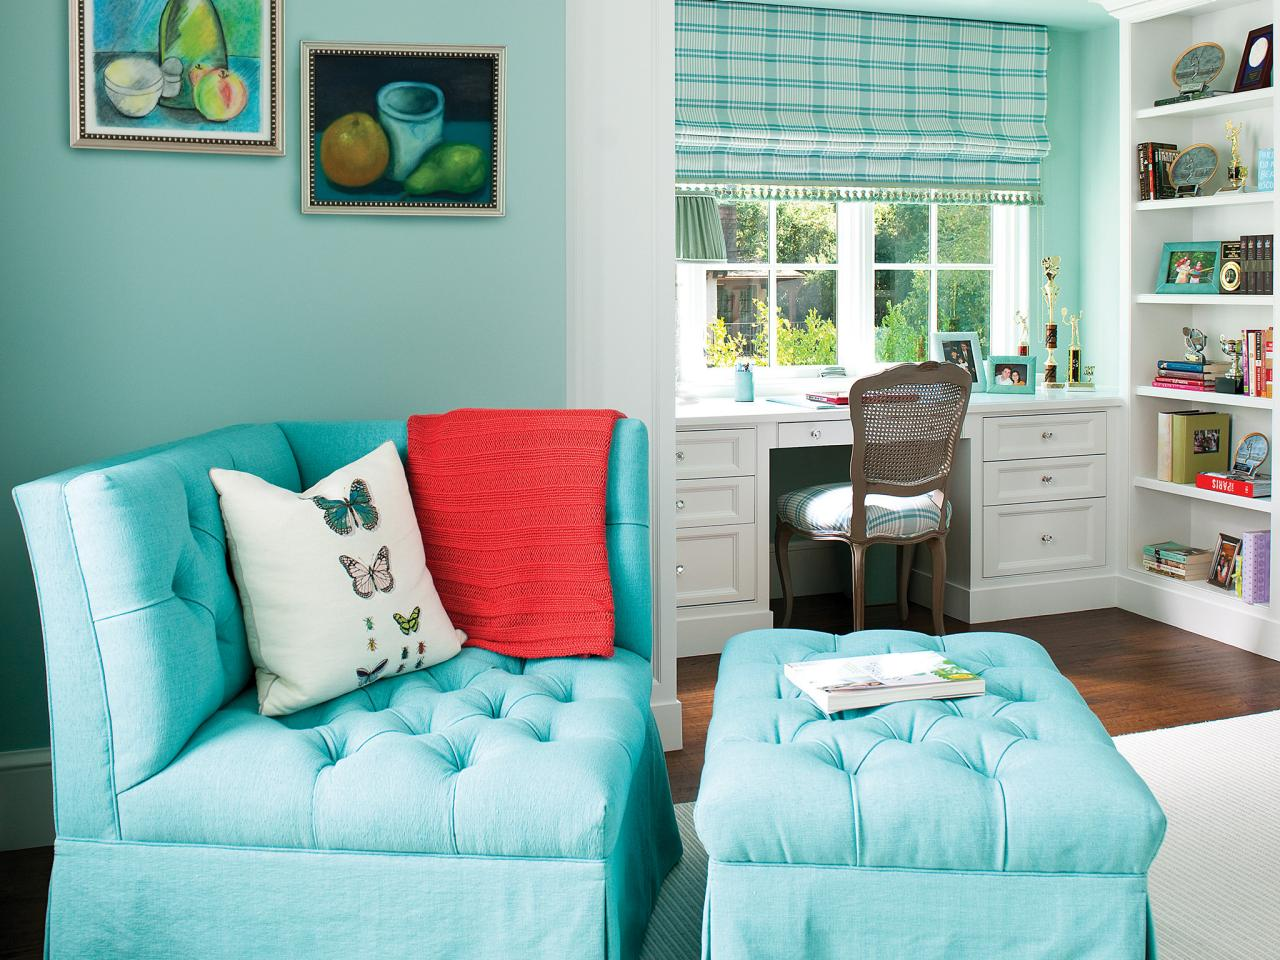 turquoise chairs for bedroom sitting area with ottoman white desk and